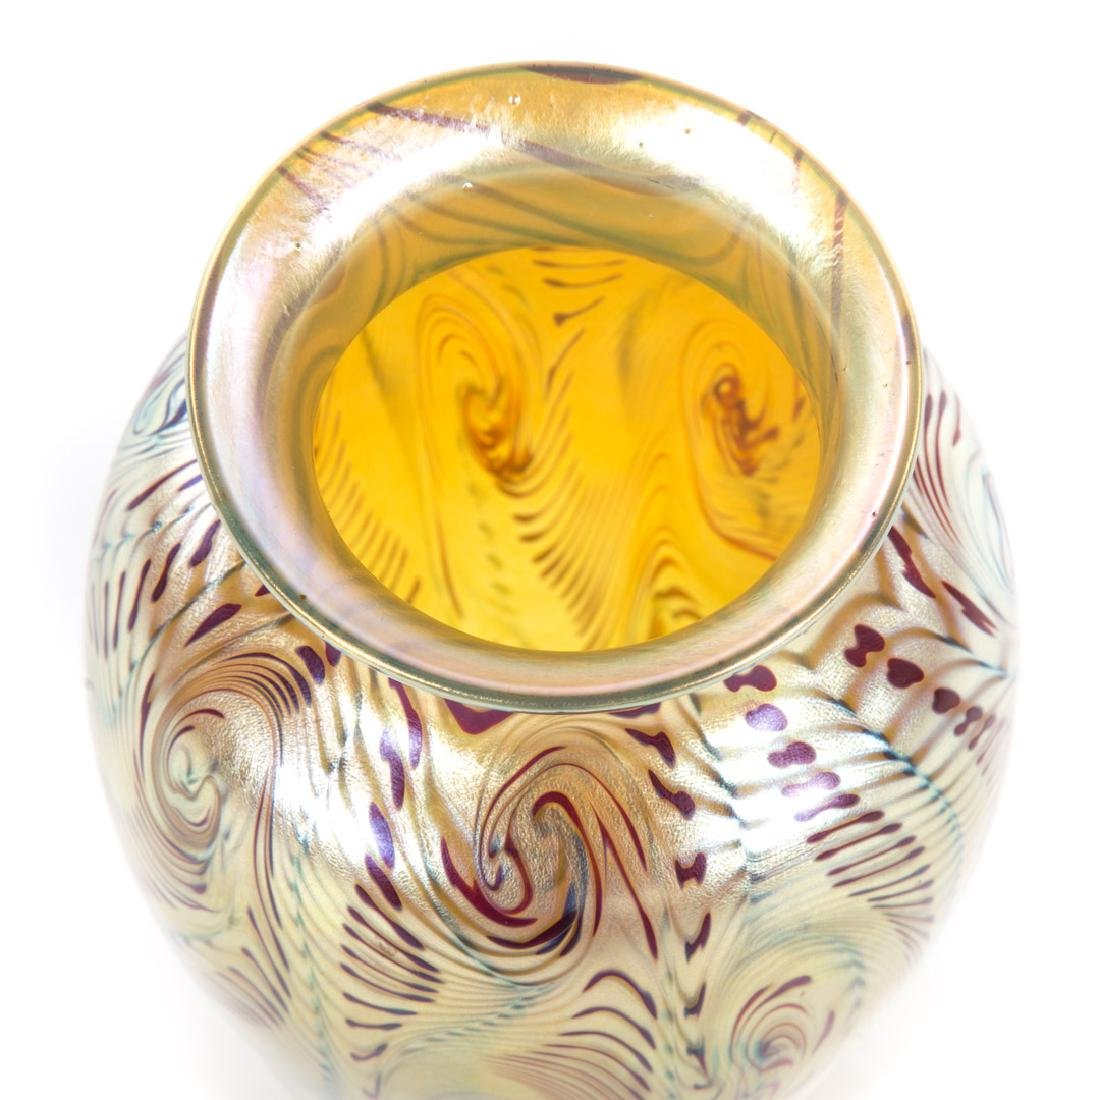 Tiffany Favrile glass vase - 2